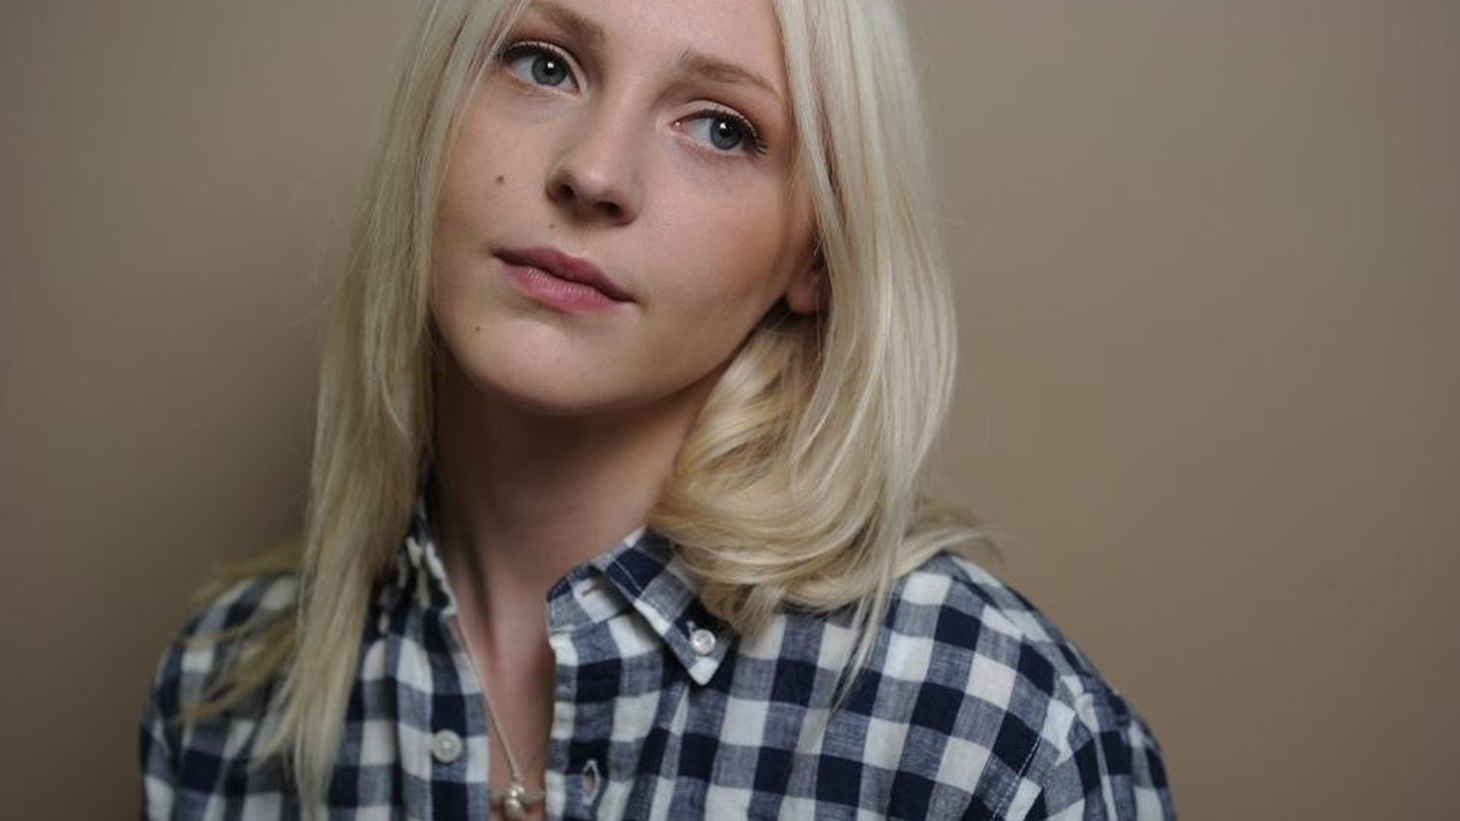 Laura Marling's upcoming full-length release is generating a lot of excitement and enthusiastic reviews. Just 21 years old, she's already a master story teller with...